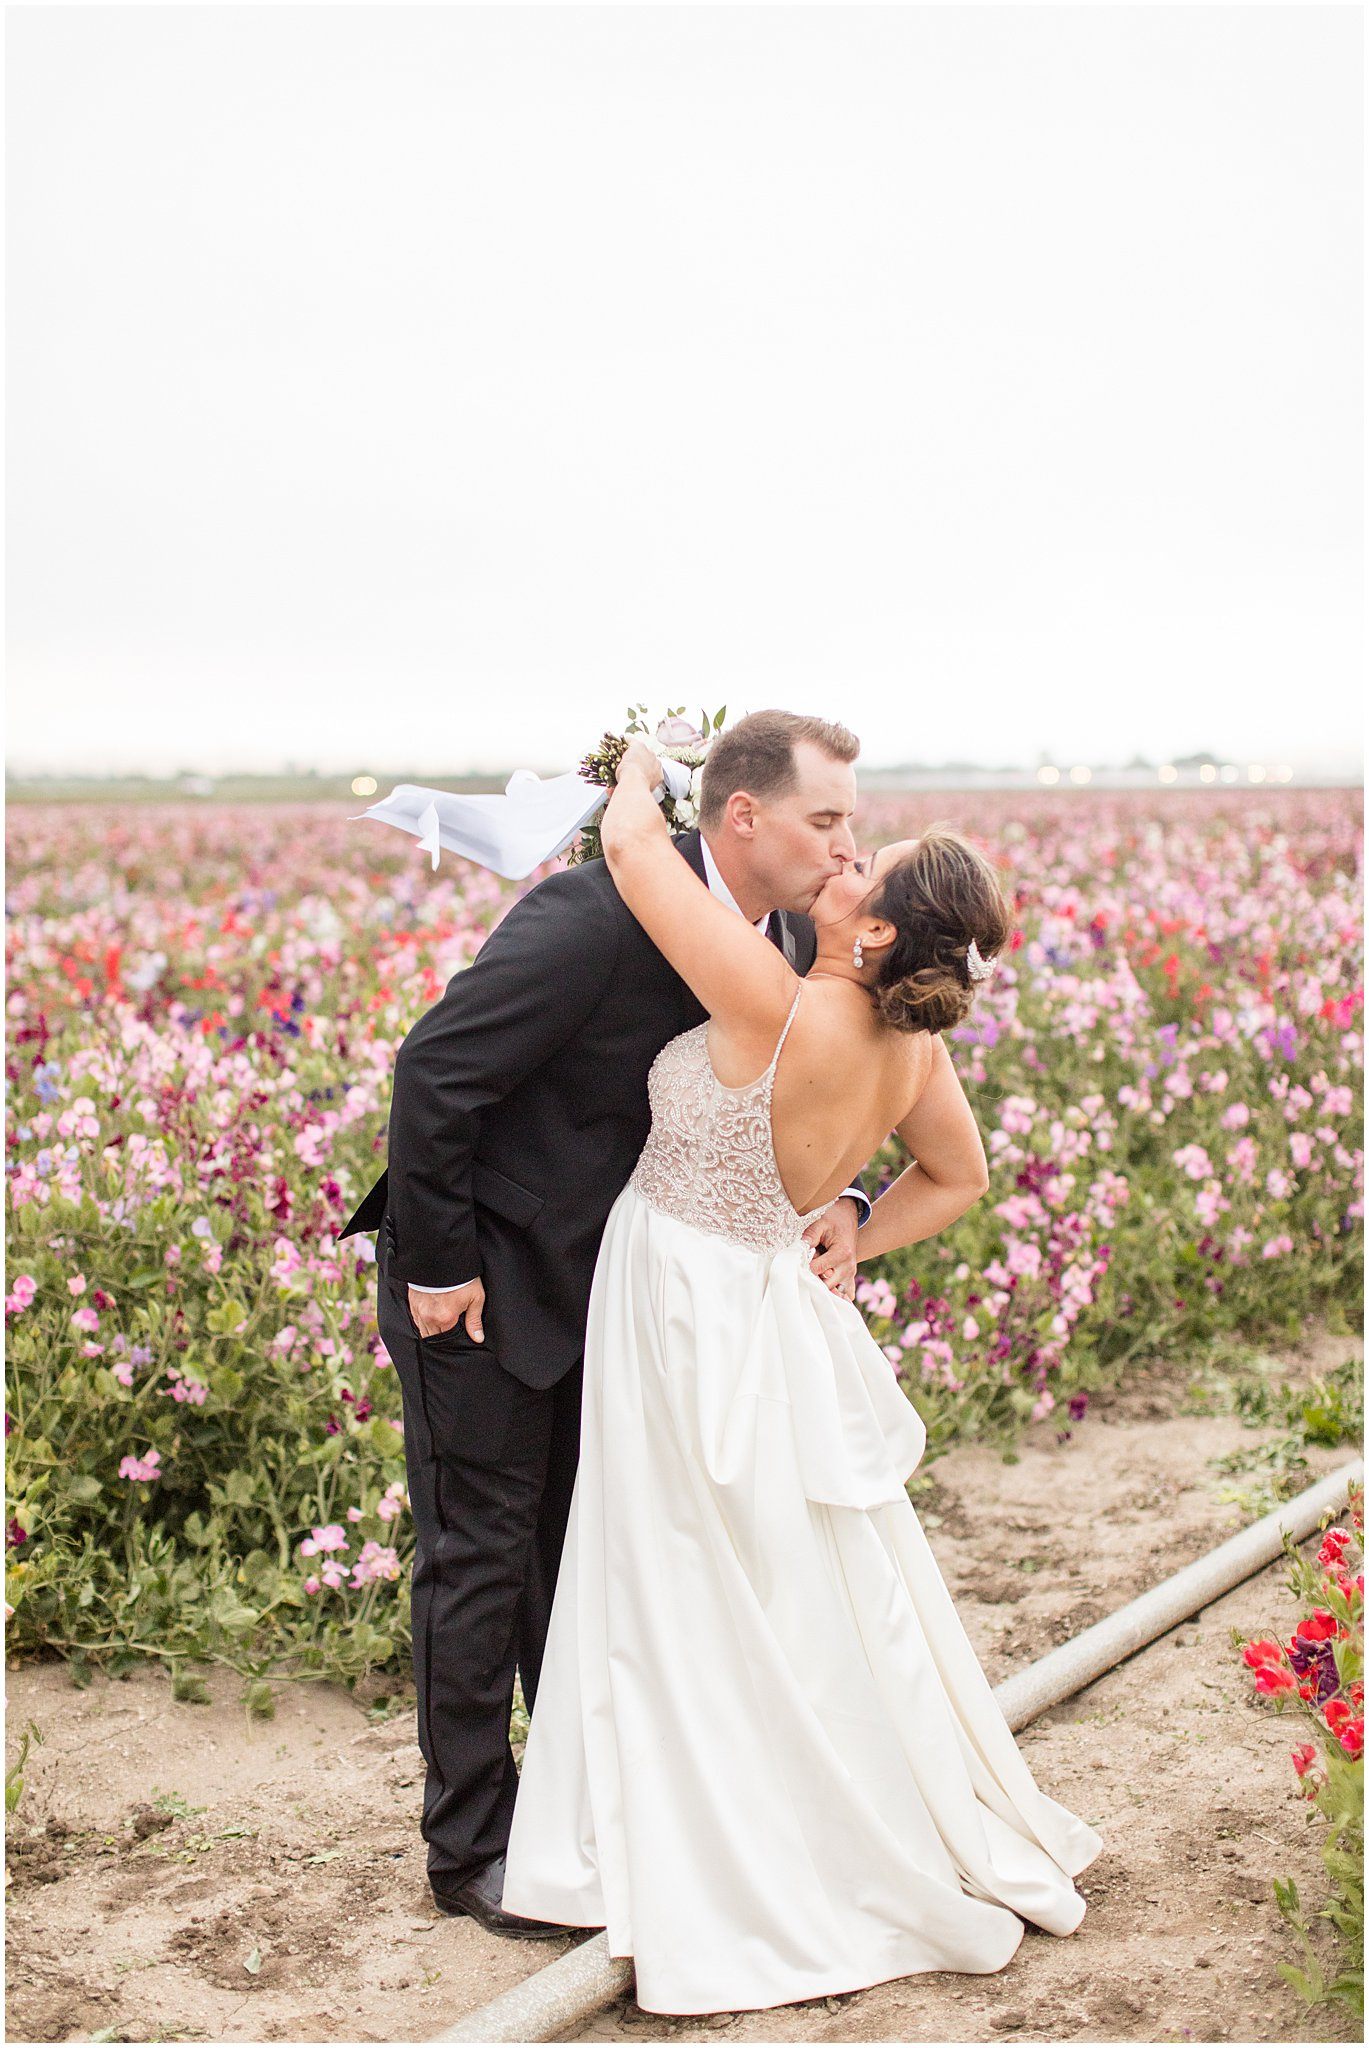 2019 wedding san juan bautista hacienda de leal vineyards bay area wedding photographer_0094.jpg